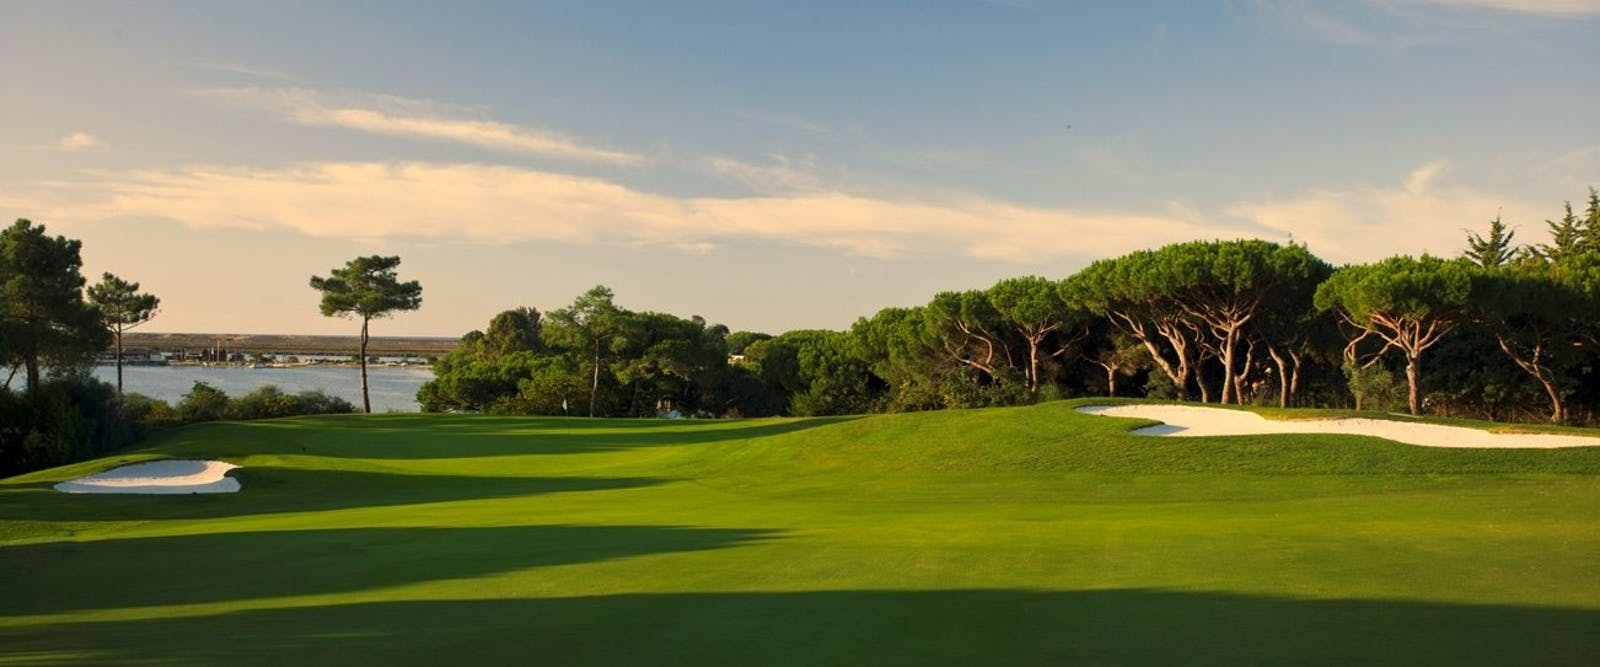 Golf Course at Hotel Quinta Do Lago, Algarve, Portugal